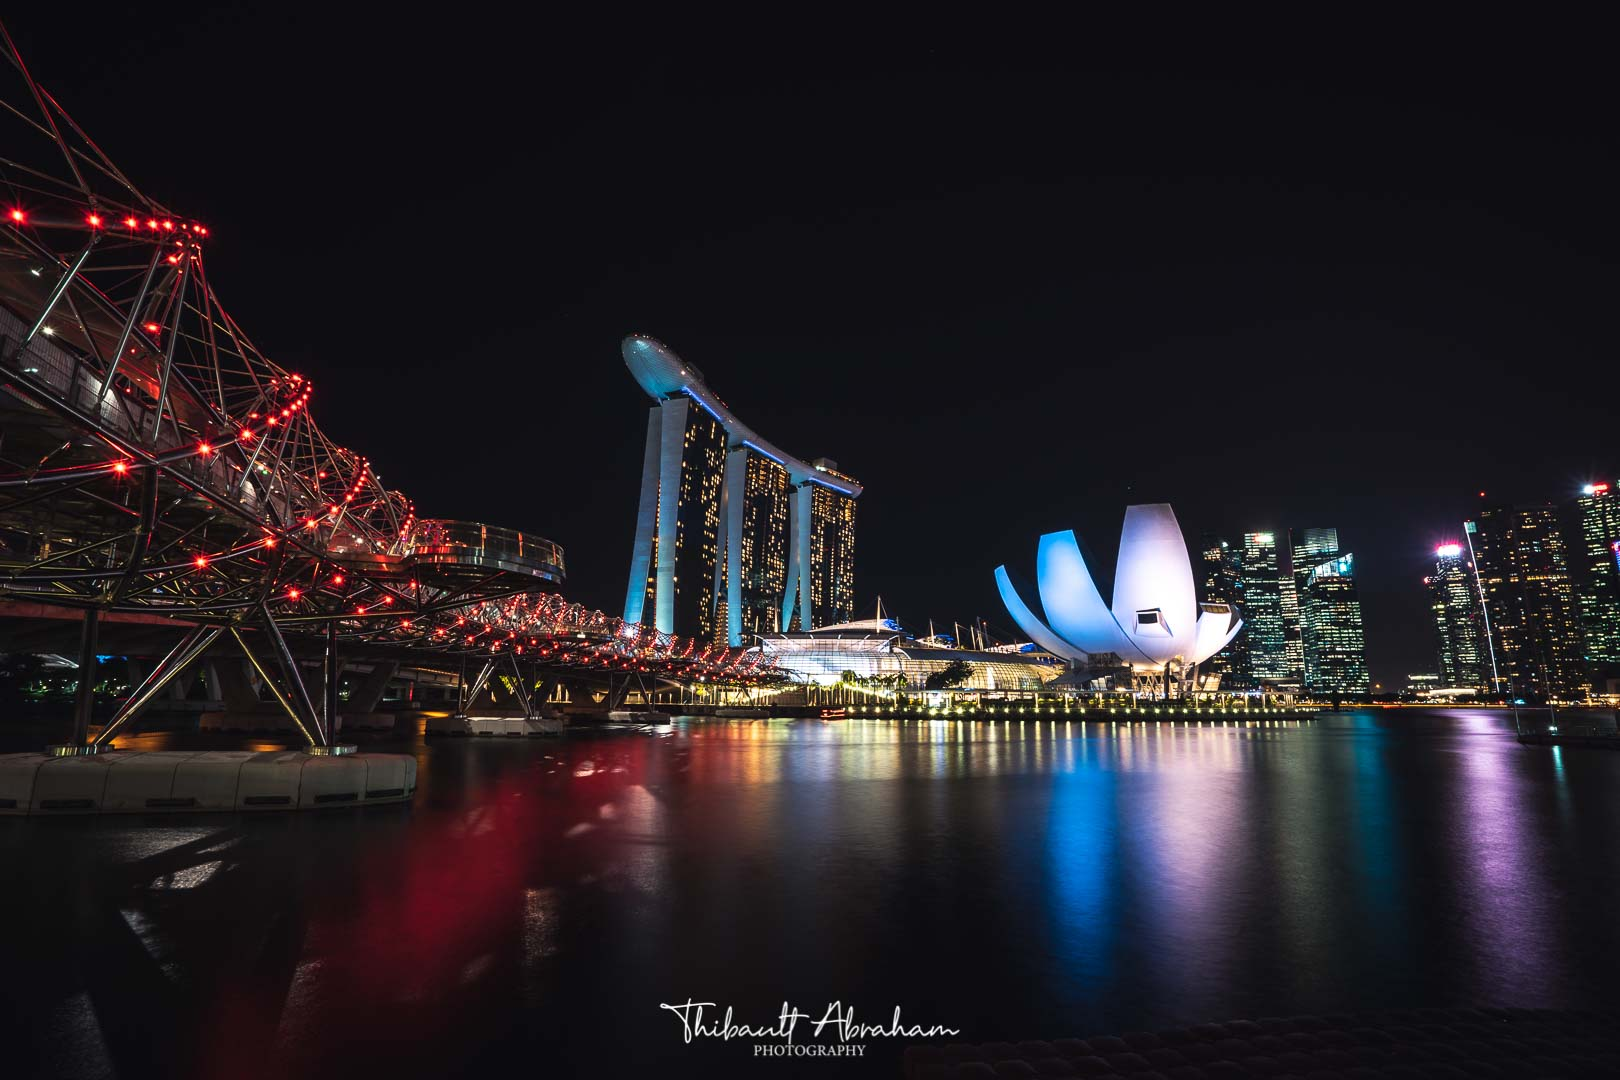 Photographie de Marina Bay Sands et Helix bridge la nuit